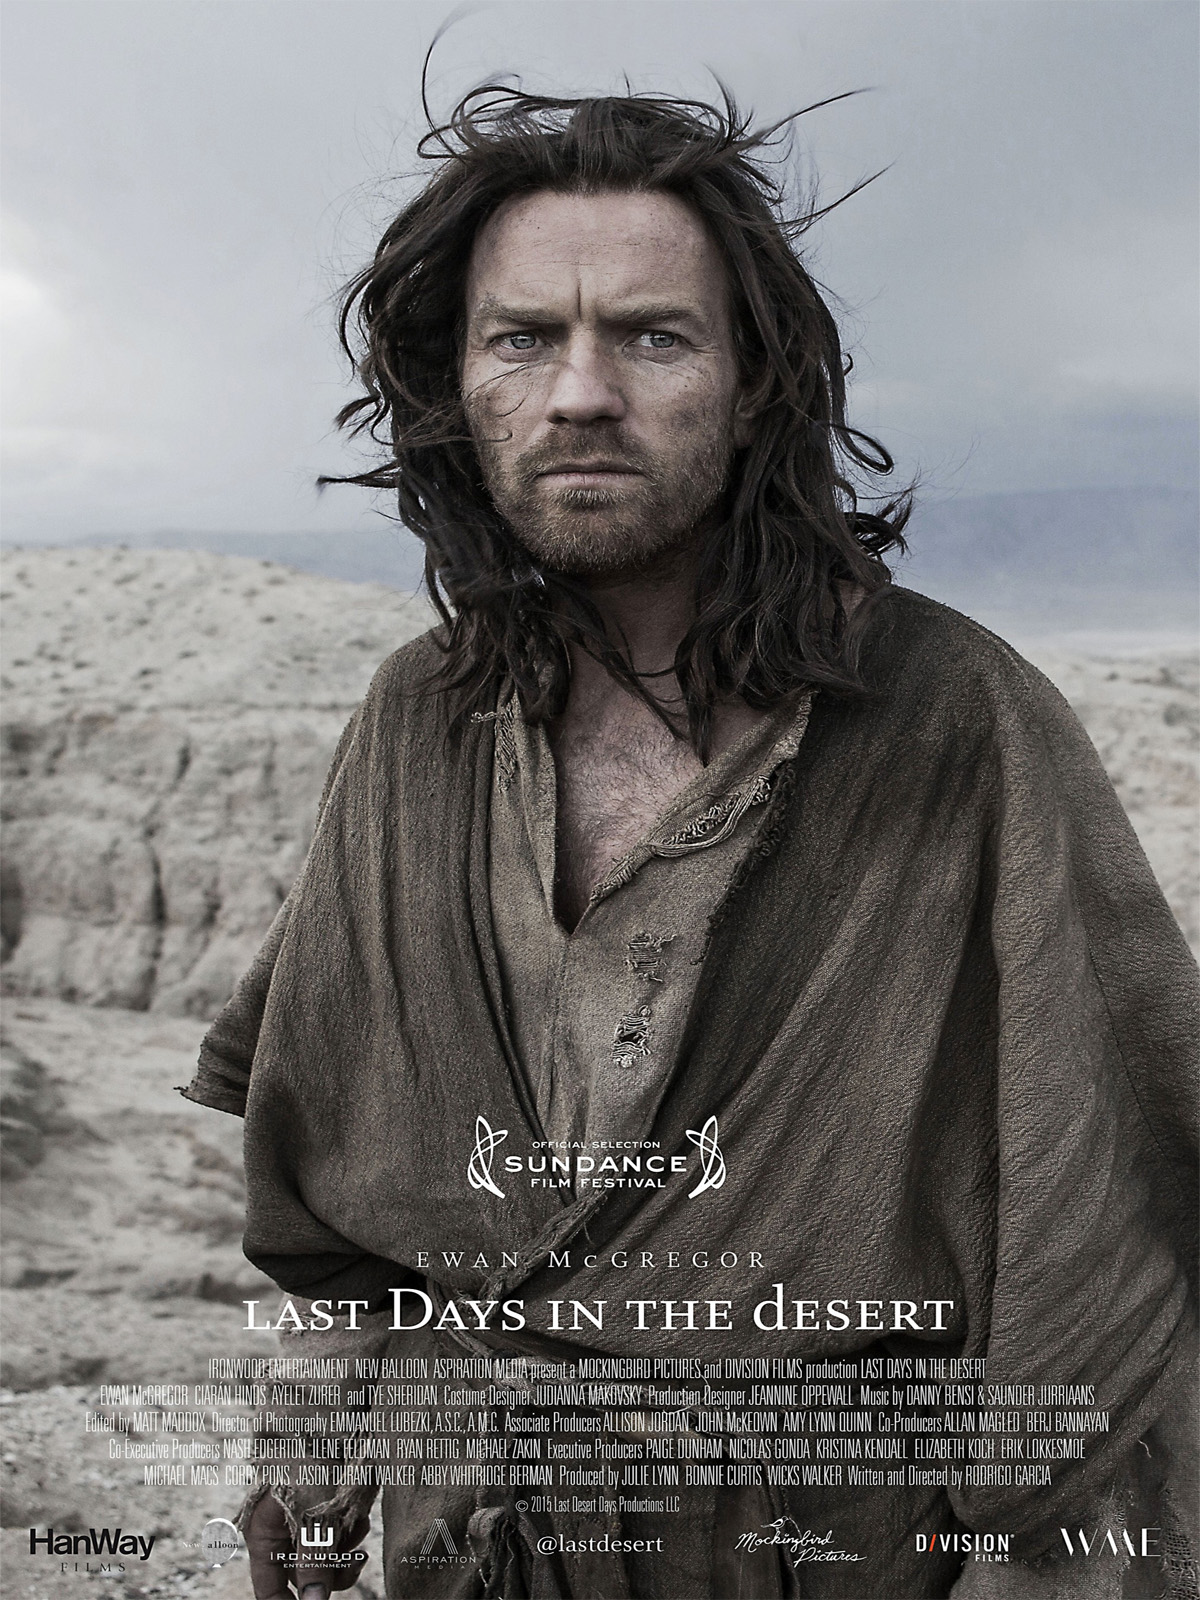 LAST DAYS IN THE DESERT - affiche du film Ewan McGregor Sundance Festival 2015 - Go with the Blog